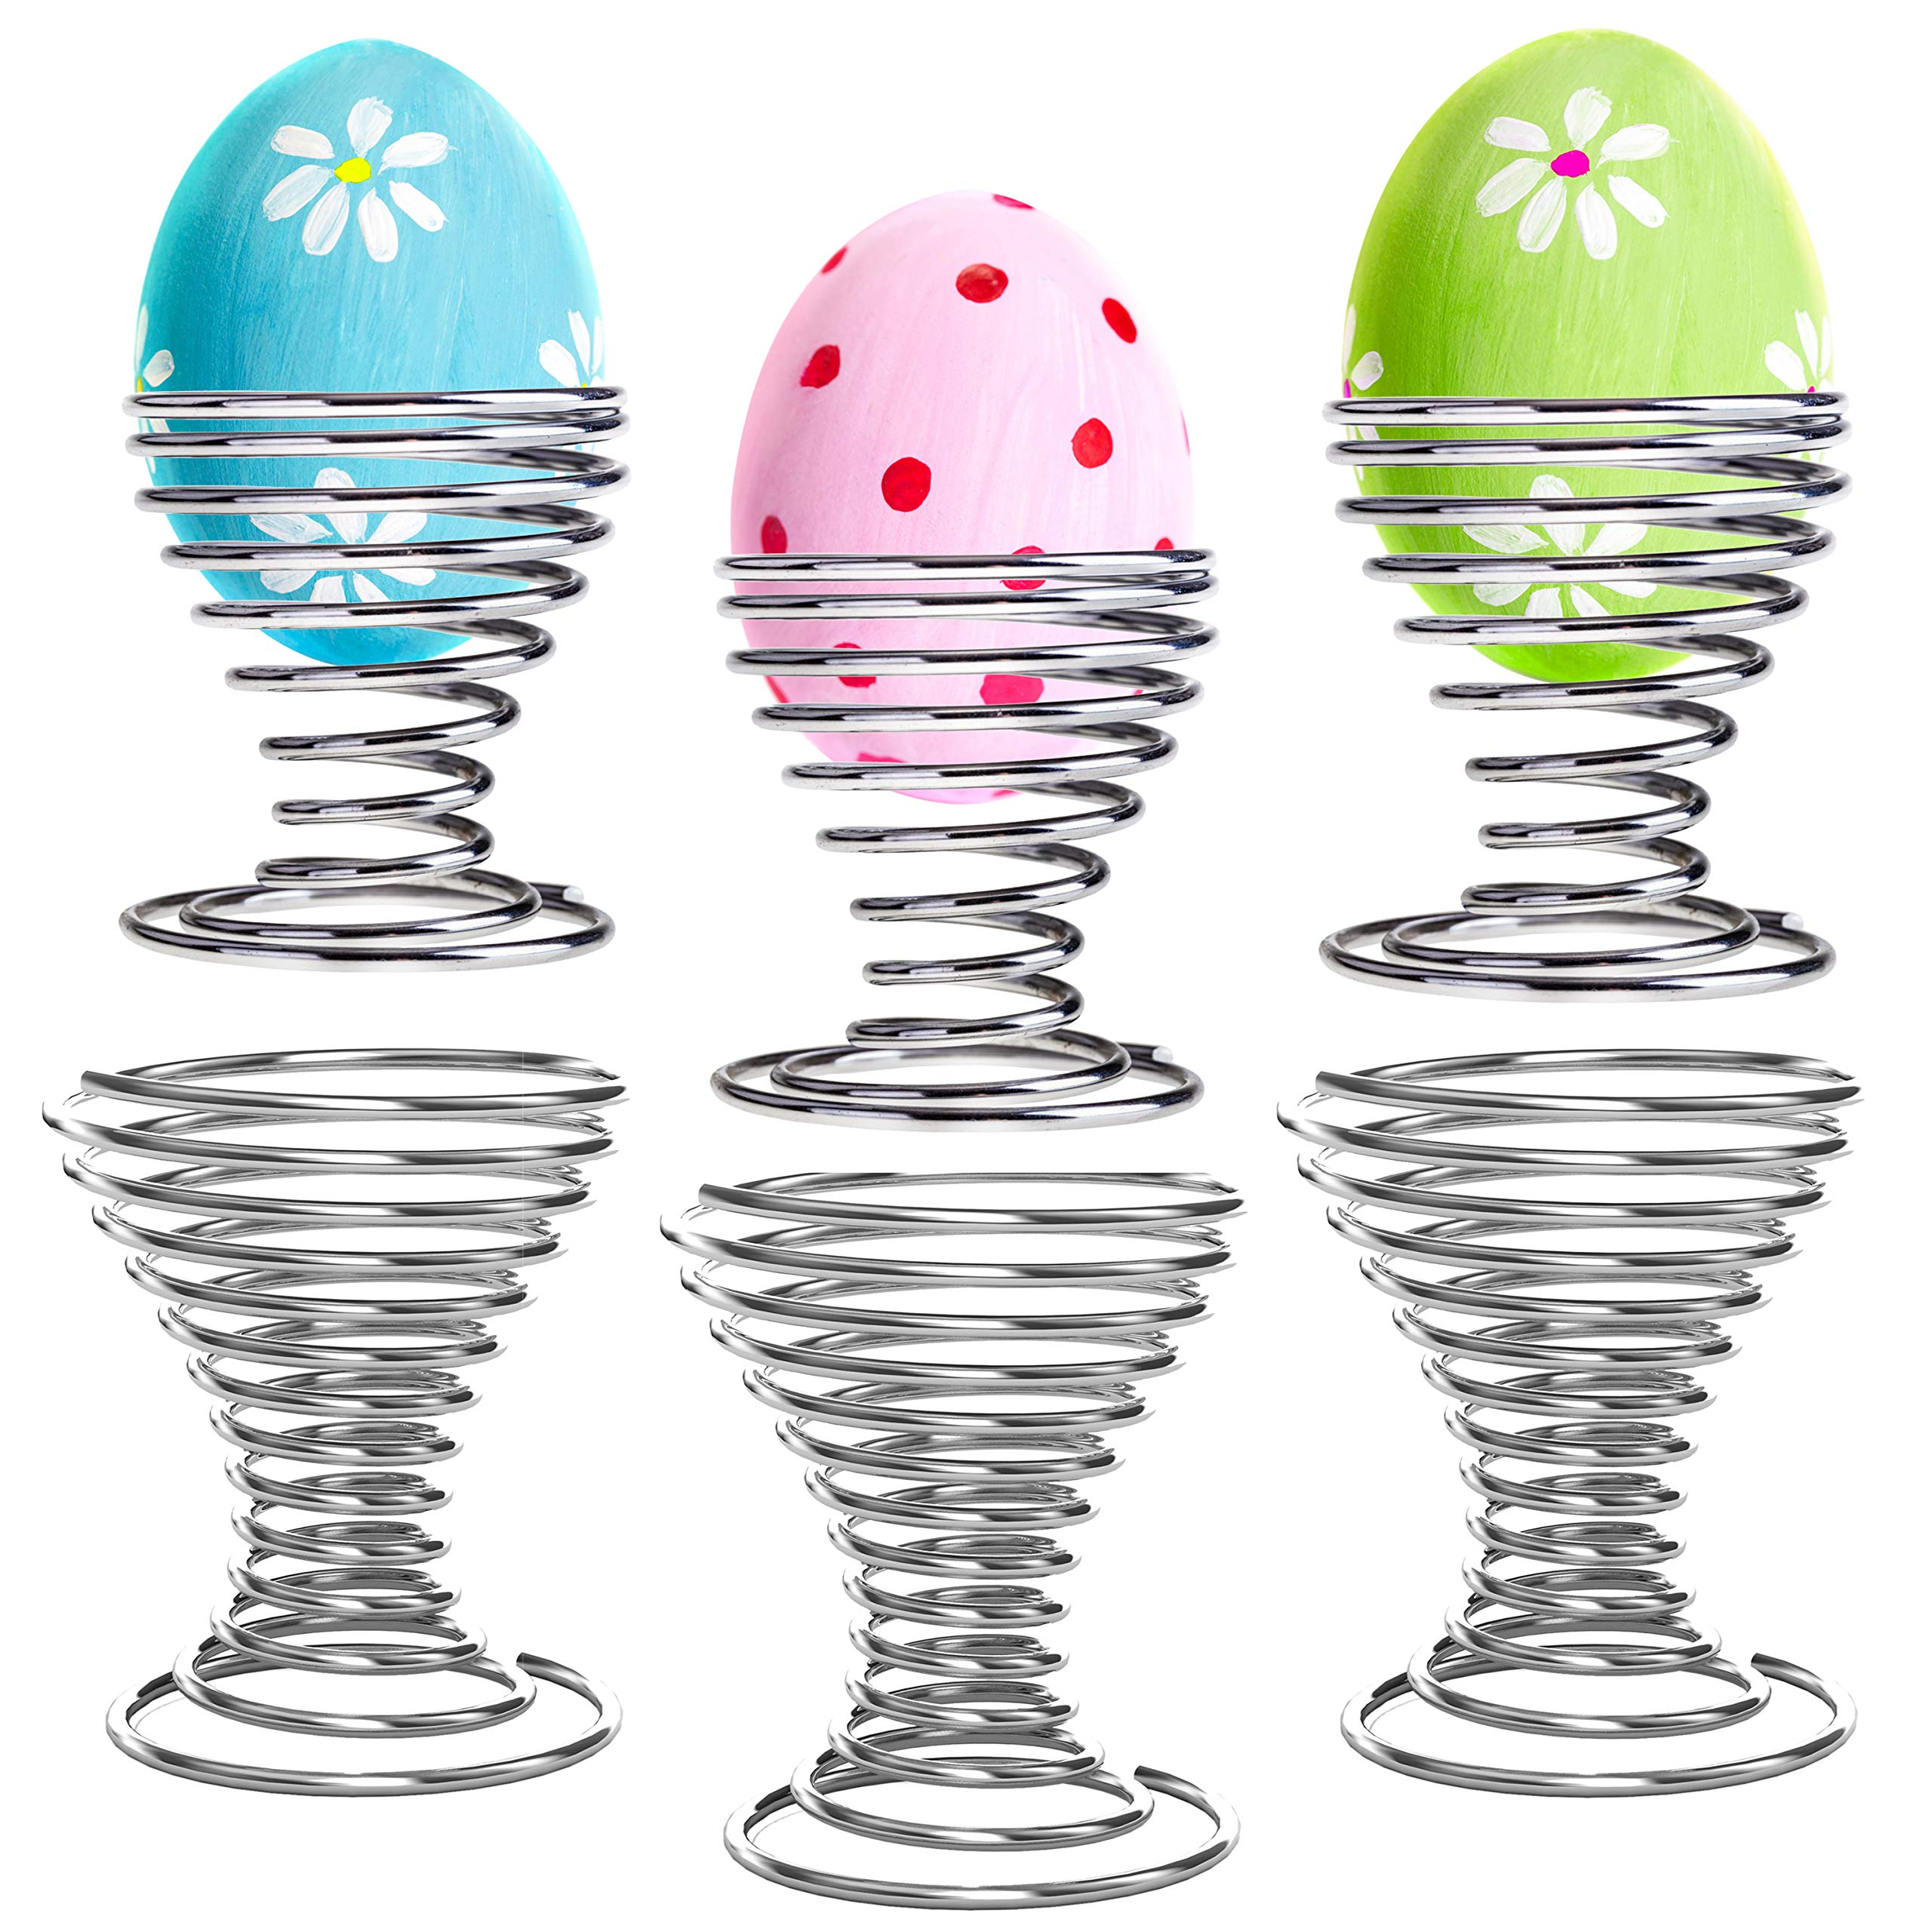 Chrome-Plated Steel Spring Wire Easter Egg Display Holder Serving Cups, Set of 6